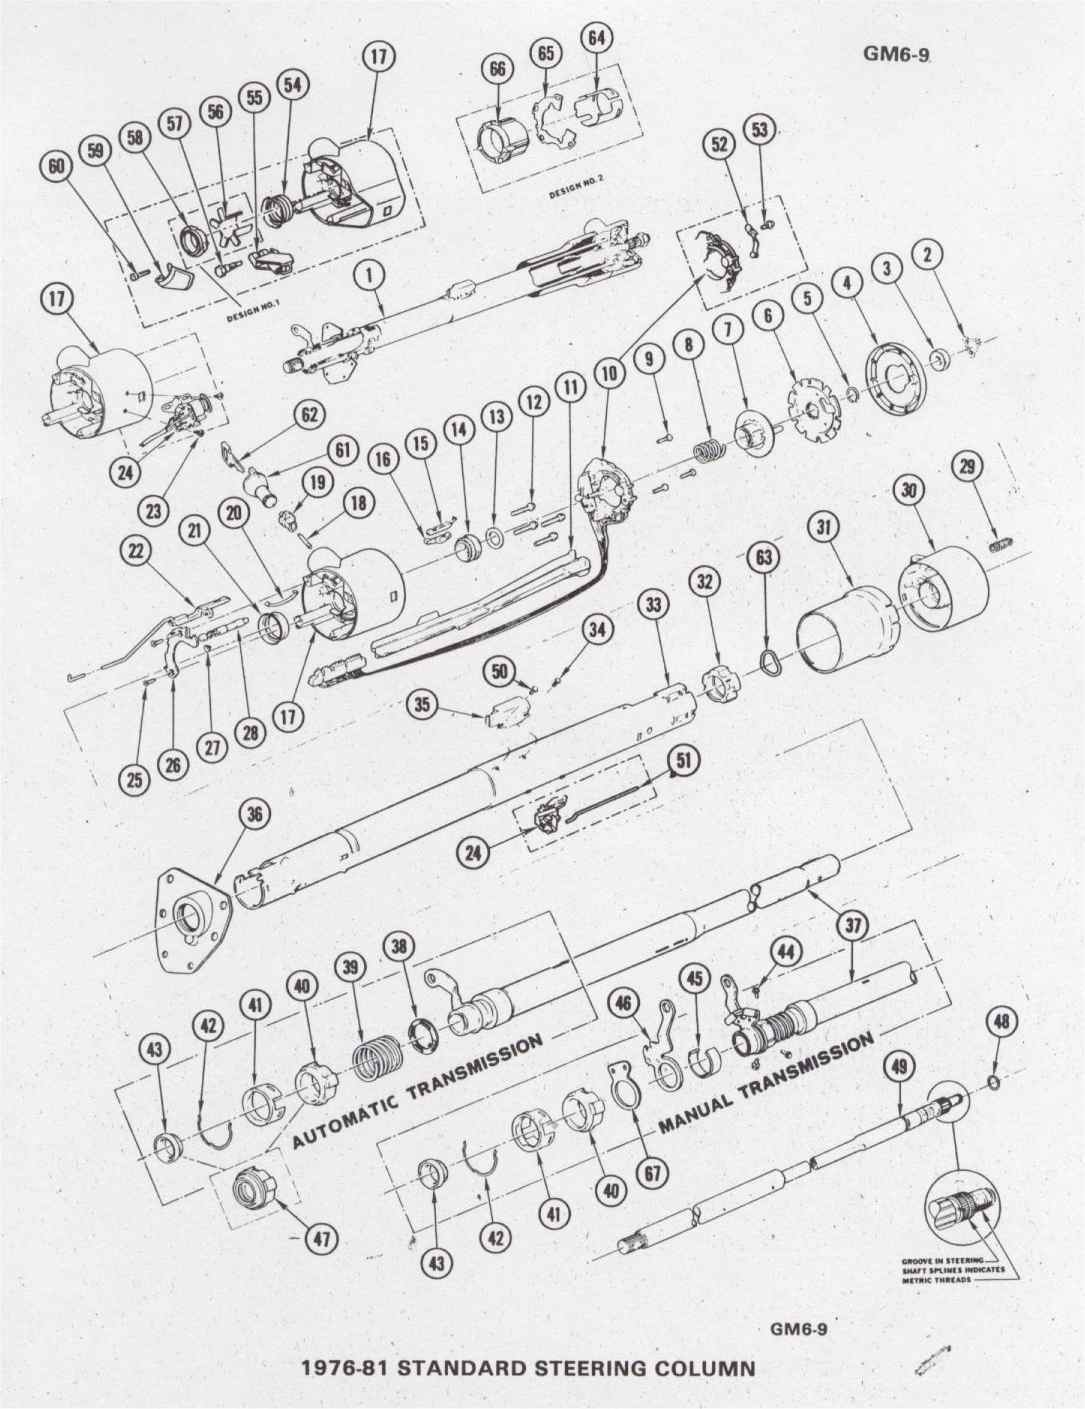 69 Chevy Steering Column Diagram. Chevy. Wiring Diagram Images